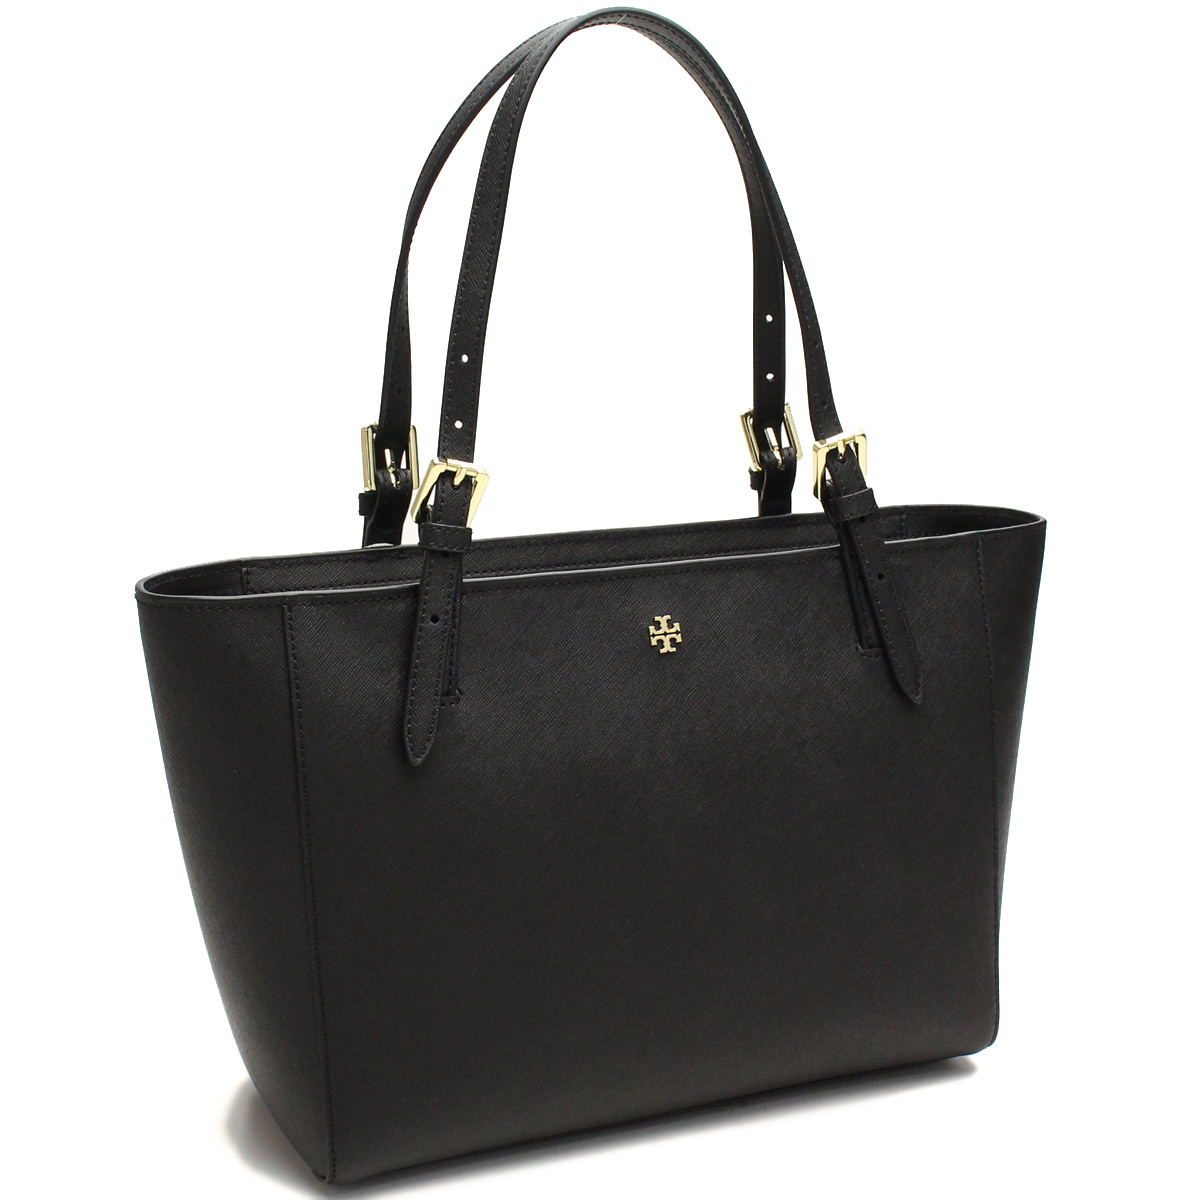 df5d1f8dd1c Bighit The total brand wholesale  Tory Burch (TORY BURCH) YORK SMALL TOP  ZIP BUCKLE TOTE tote bag 31159781-001 BLACK black( taxfree send by  EMS authentic A ...